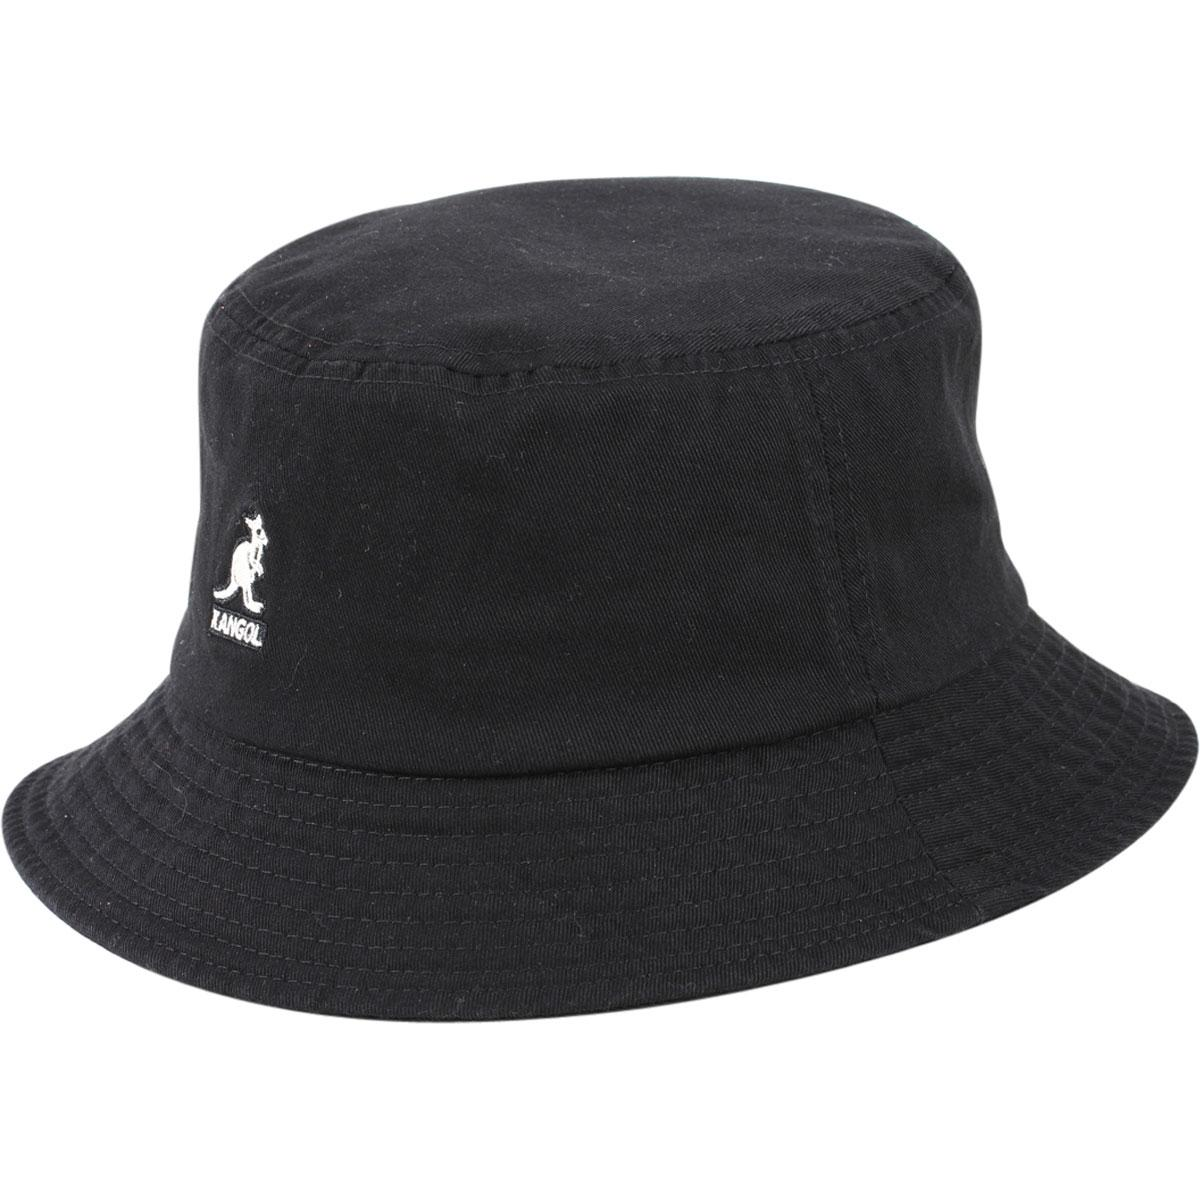 c1cd3a328d6 Kangol Men s Washed Cotton Bucket Hat by Kangol